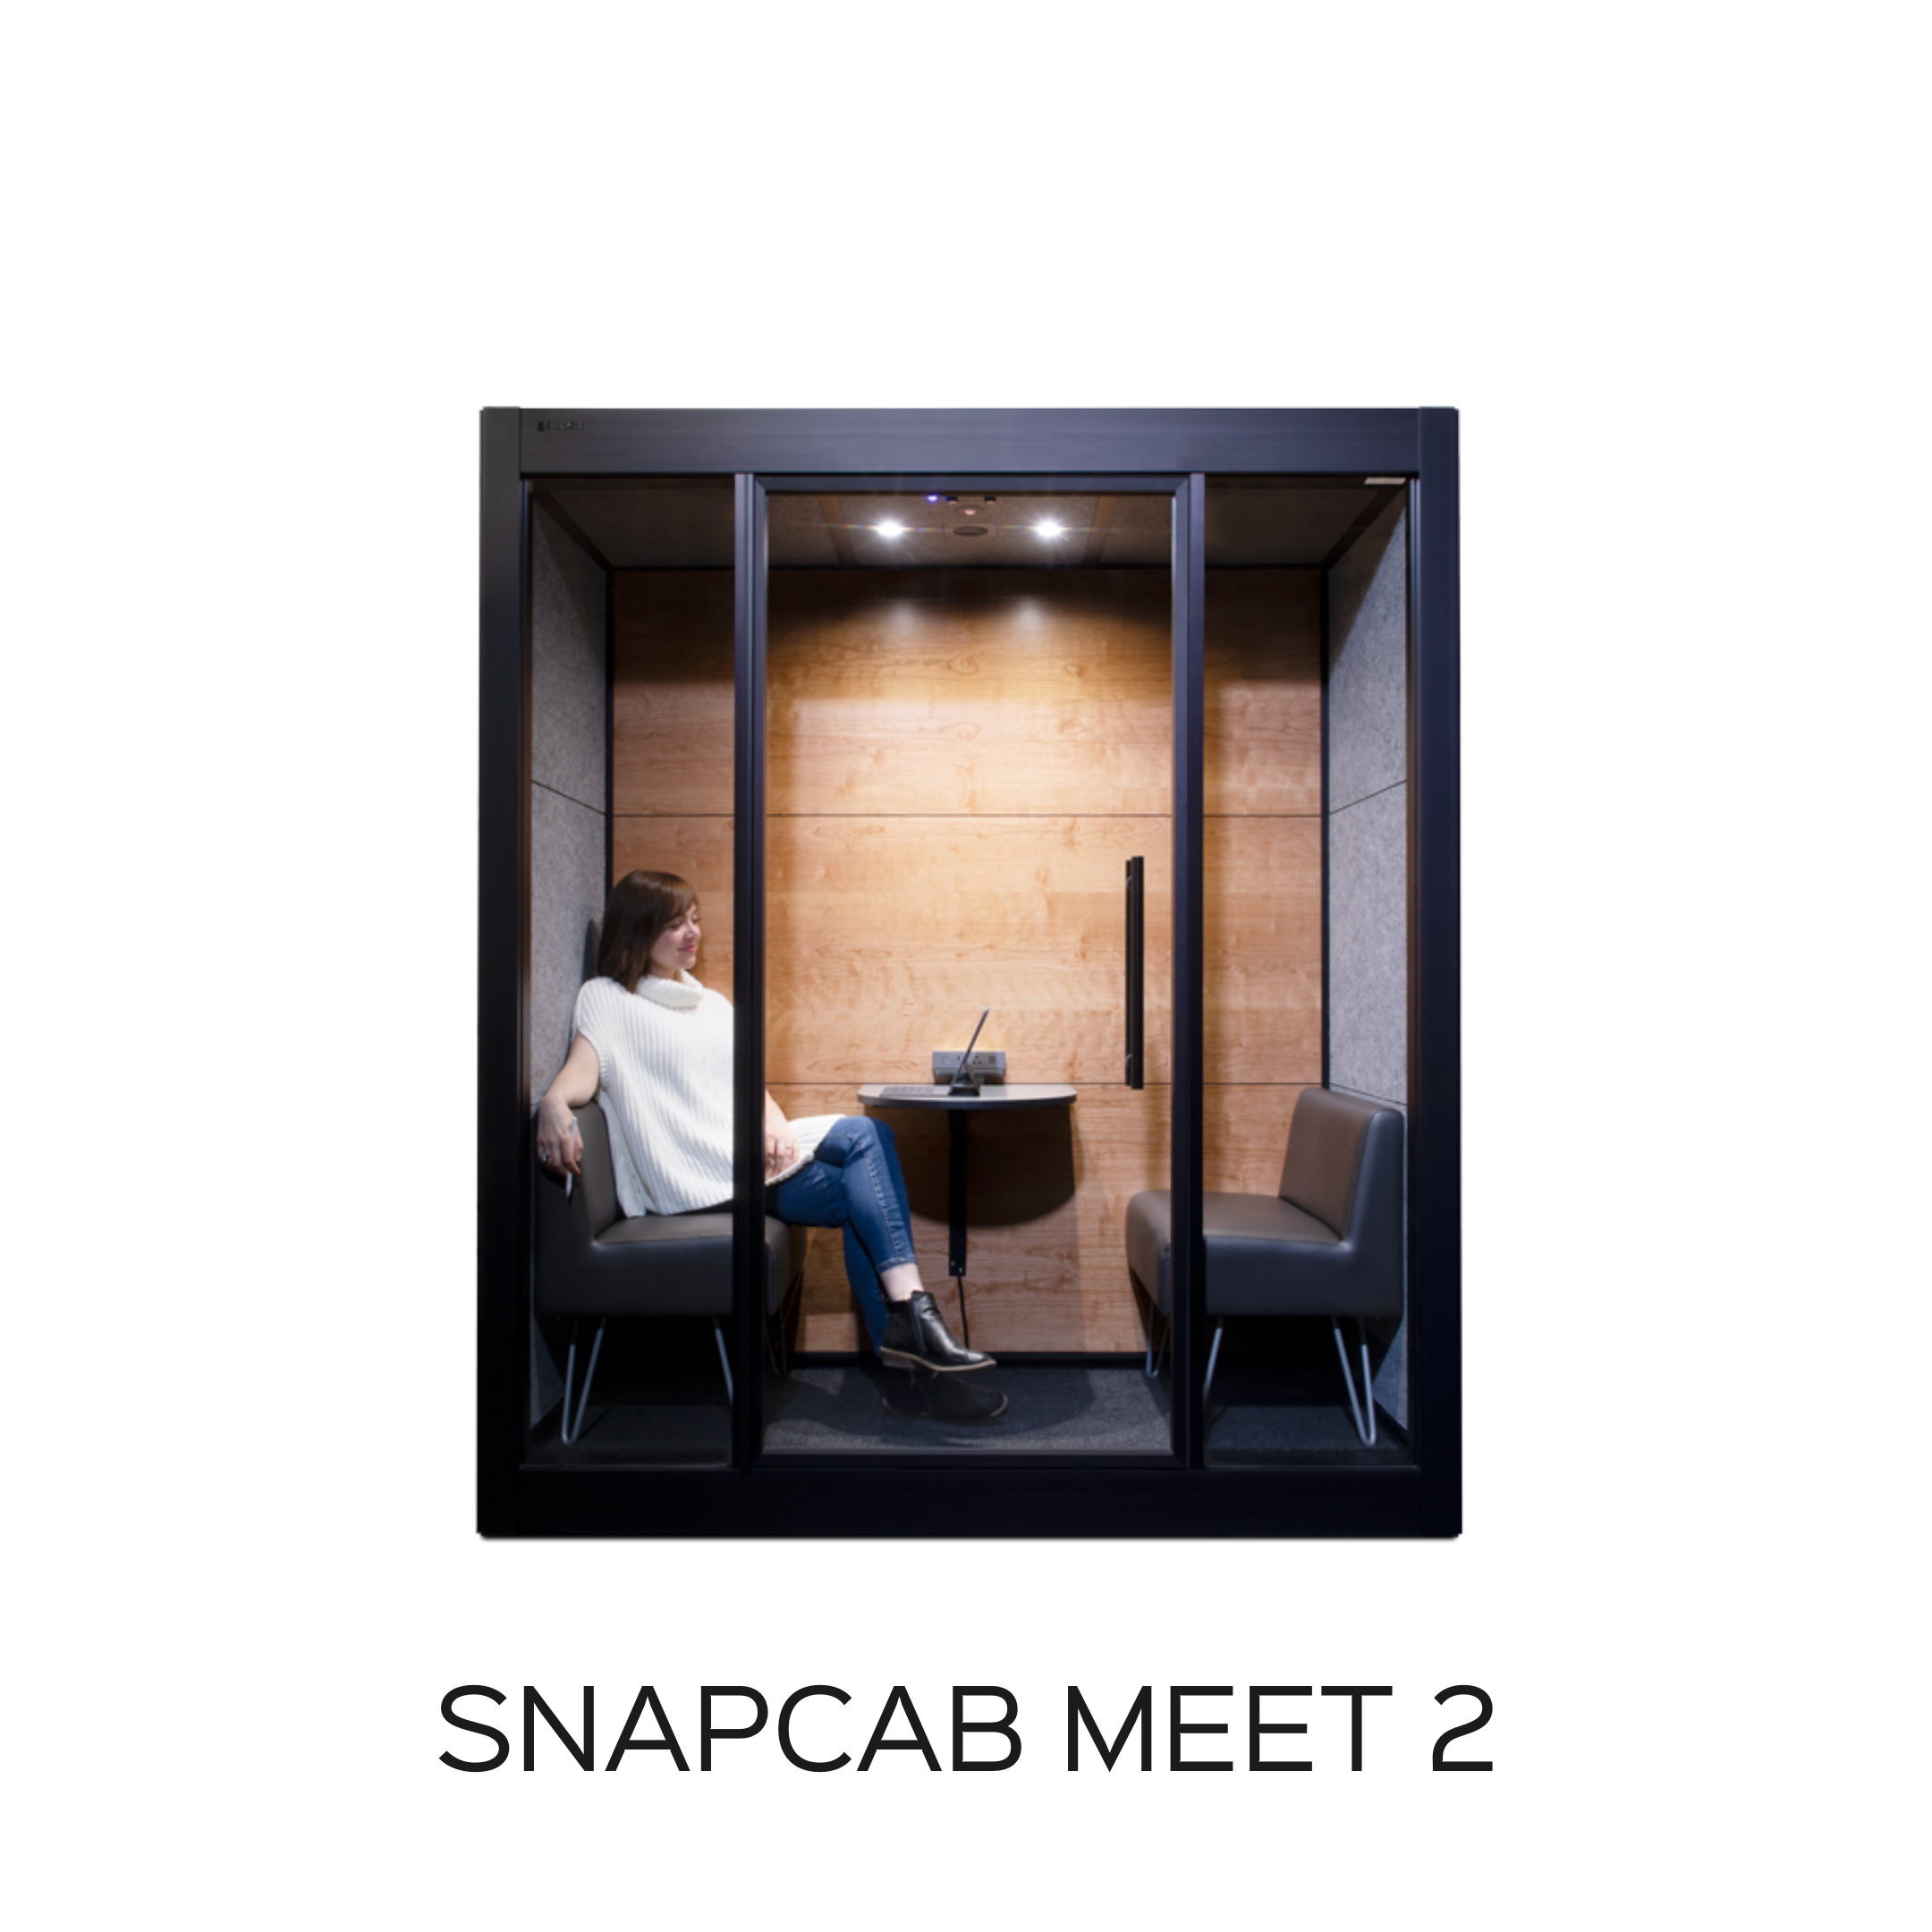 Meeting Pod for two people - SnapCab Meet 2 conference pod